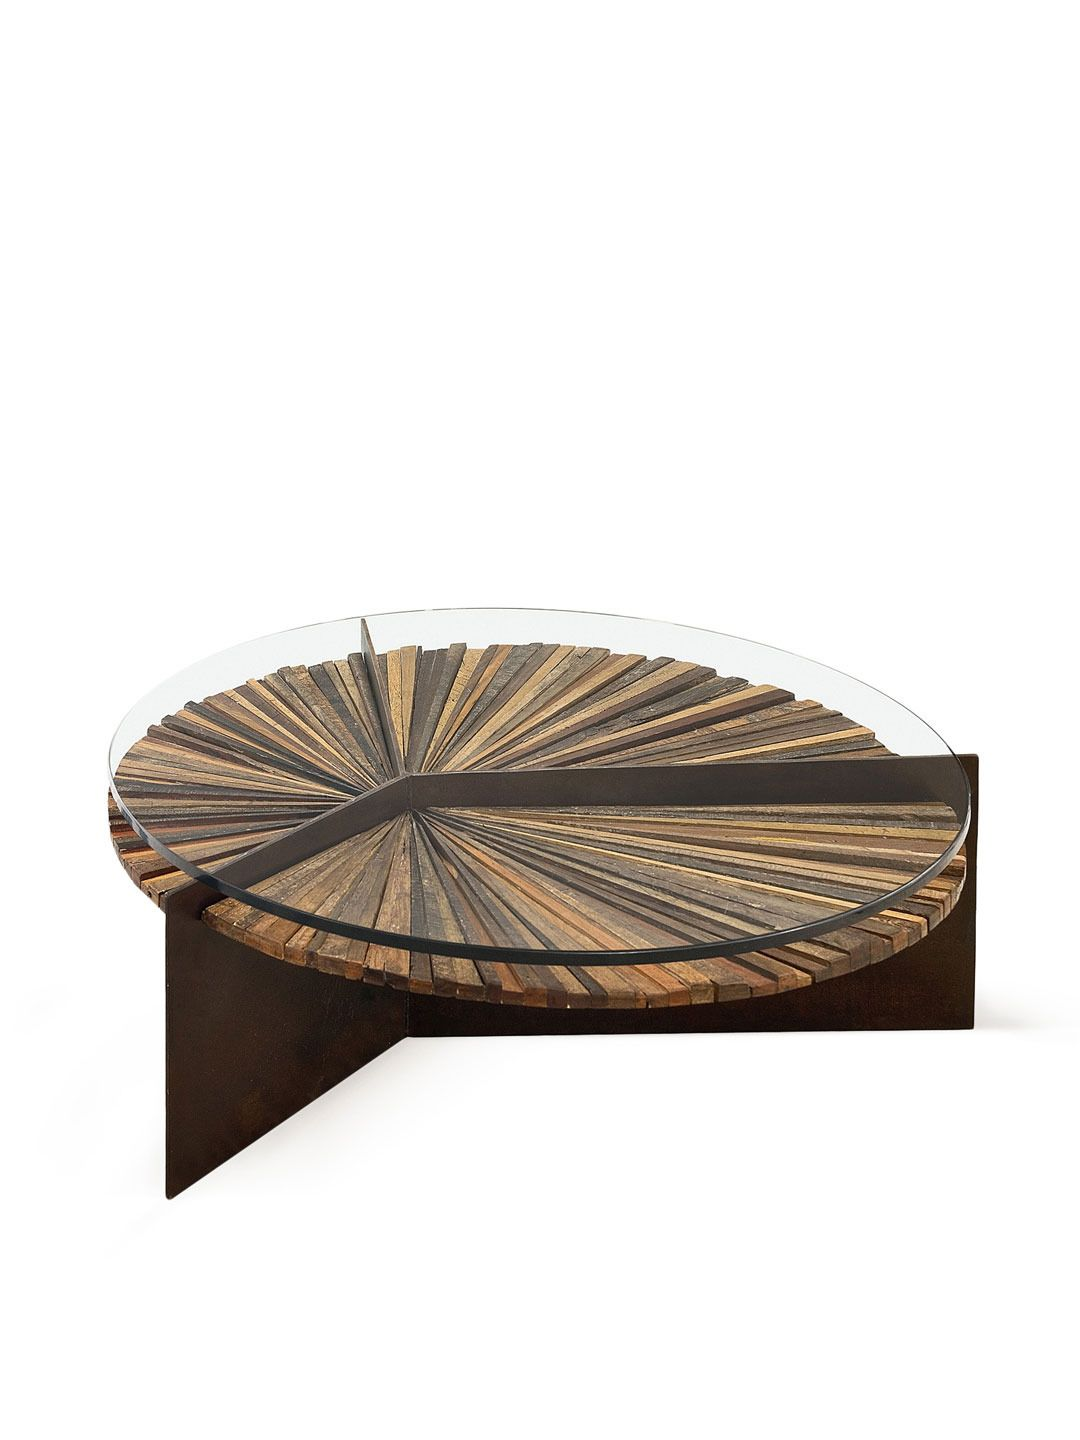 Made to resemble the shape of a mandala this magical table is